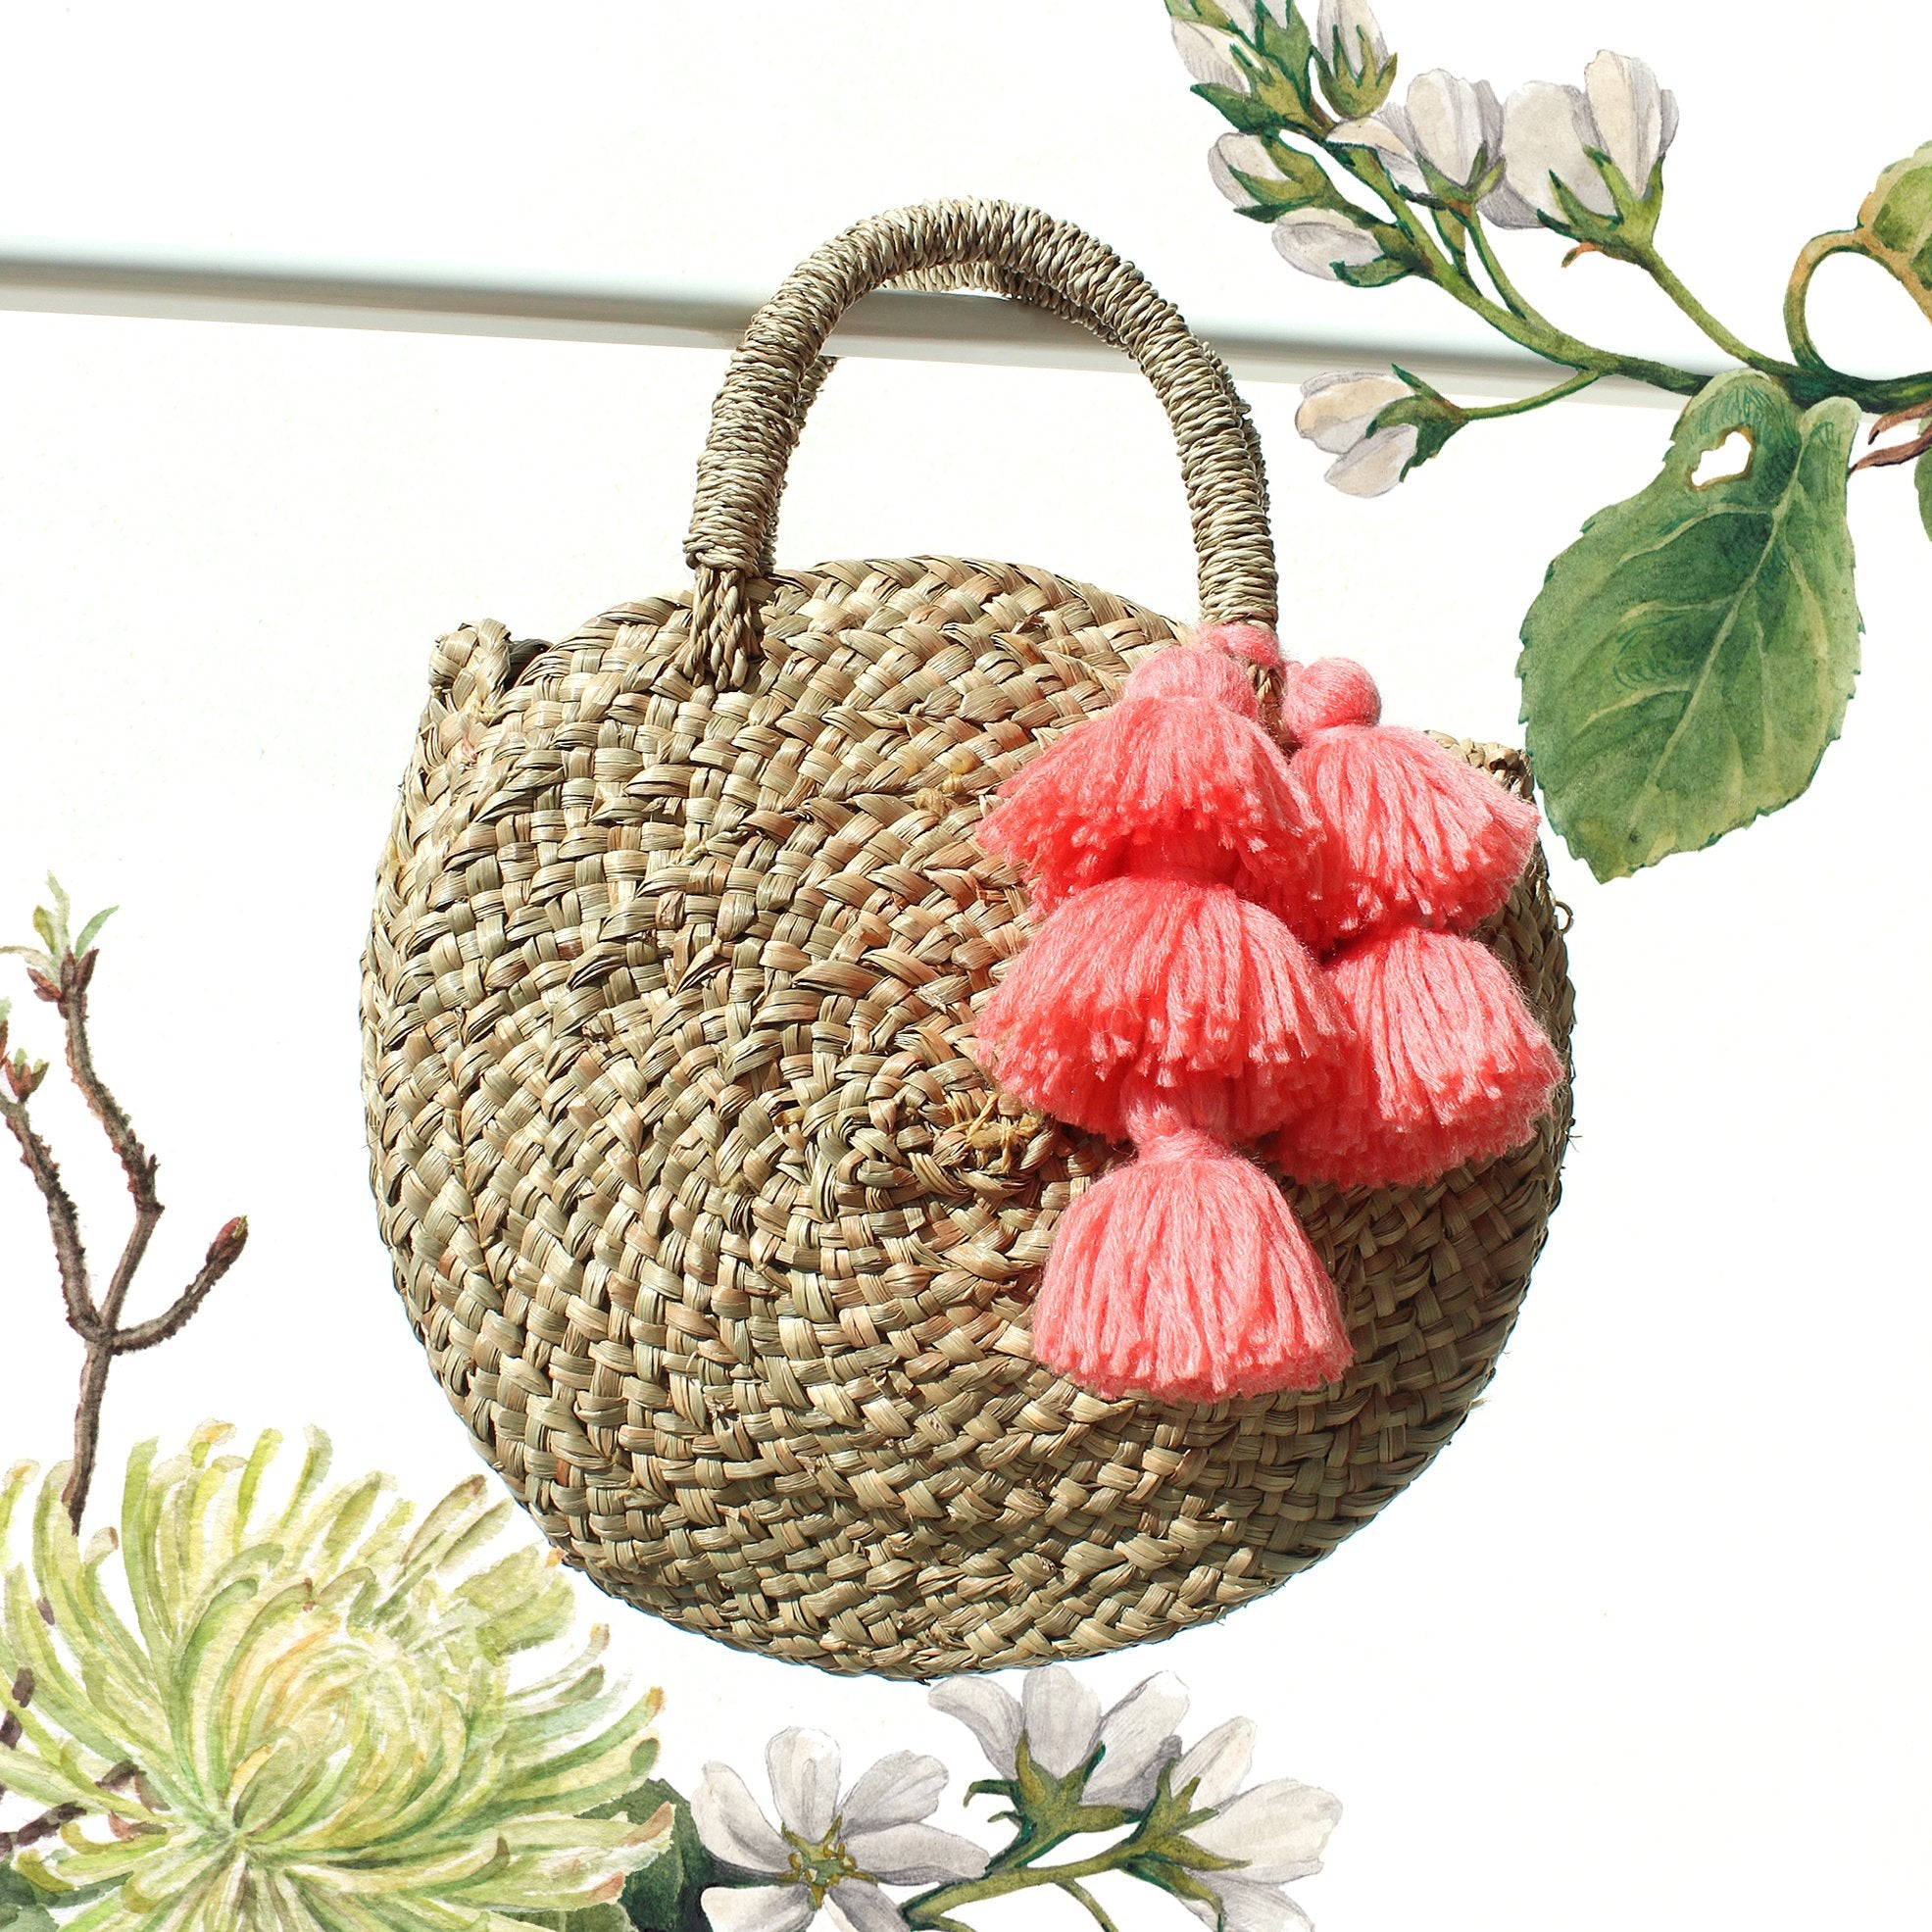 Petite Luna Bag - Round Straw Tote Bag with Pink